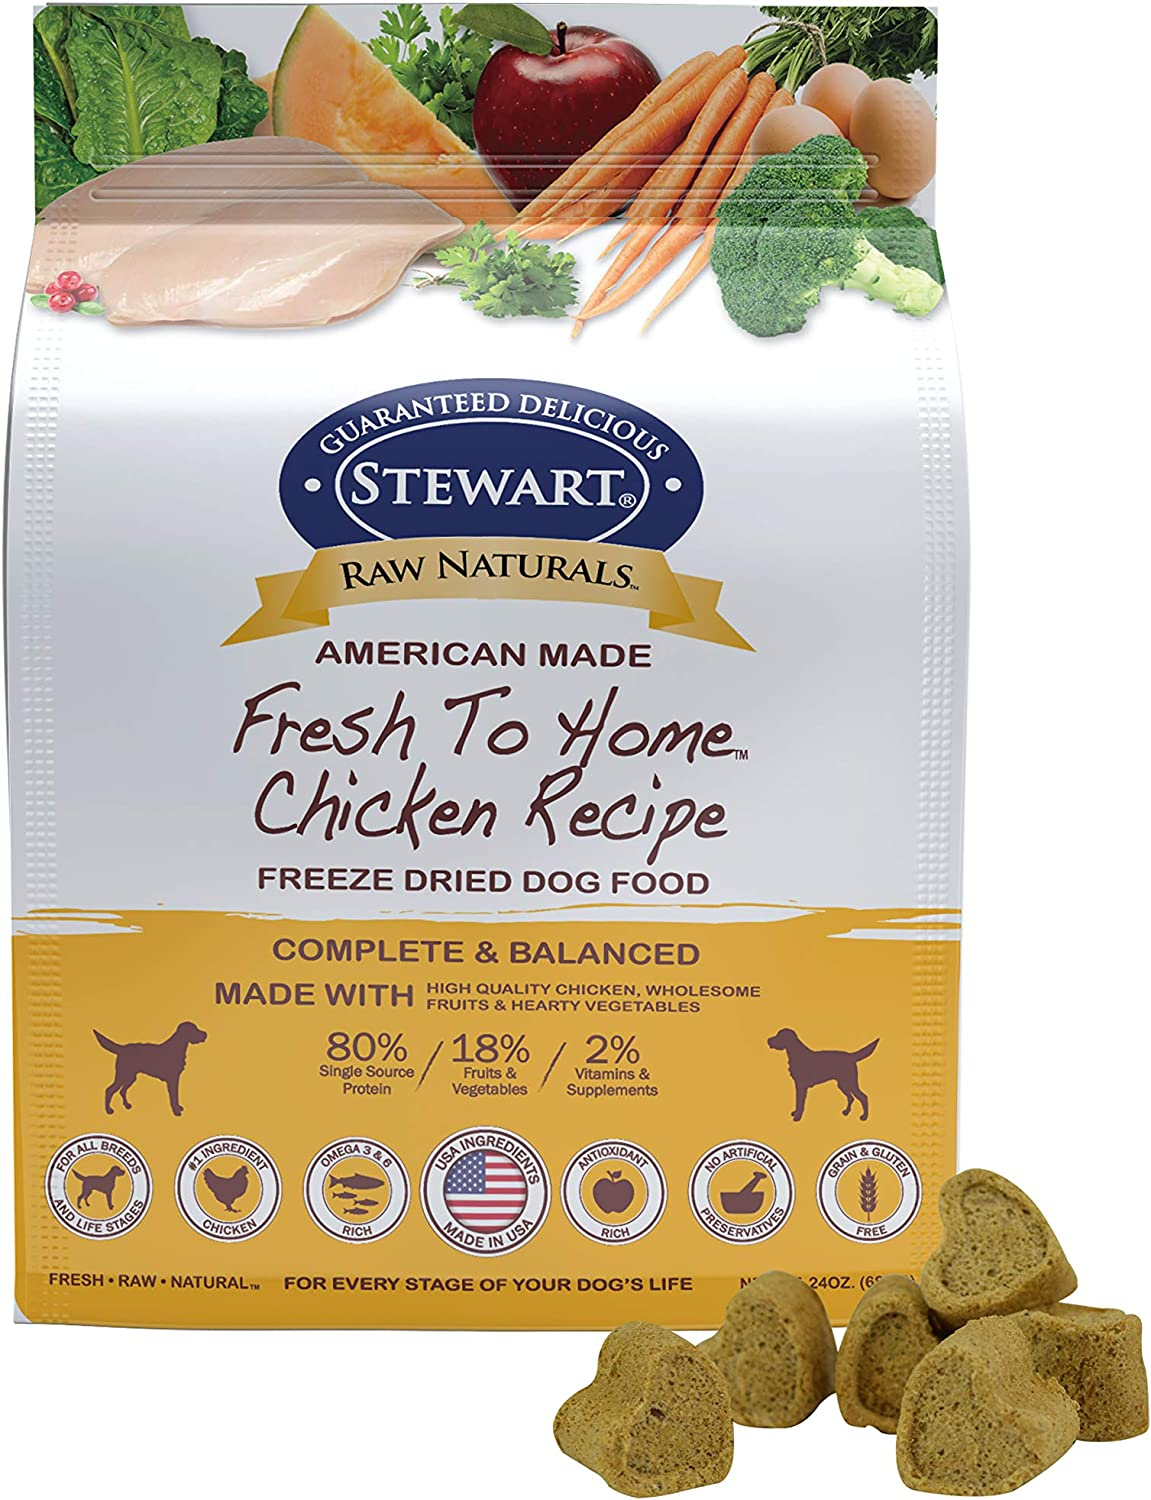 Stewart Raw Naturals Freeze Dried Dog Food Grain Free Made In Usa With Chicken Fruits Vegetables For Fresh To Home All Natural Recipe 24 Oz Pet Supplies